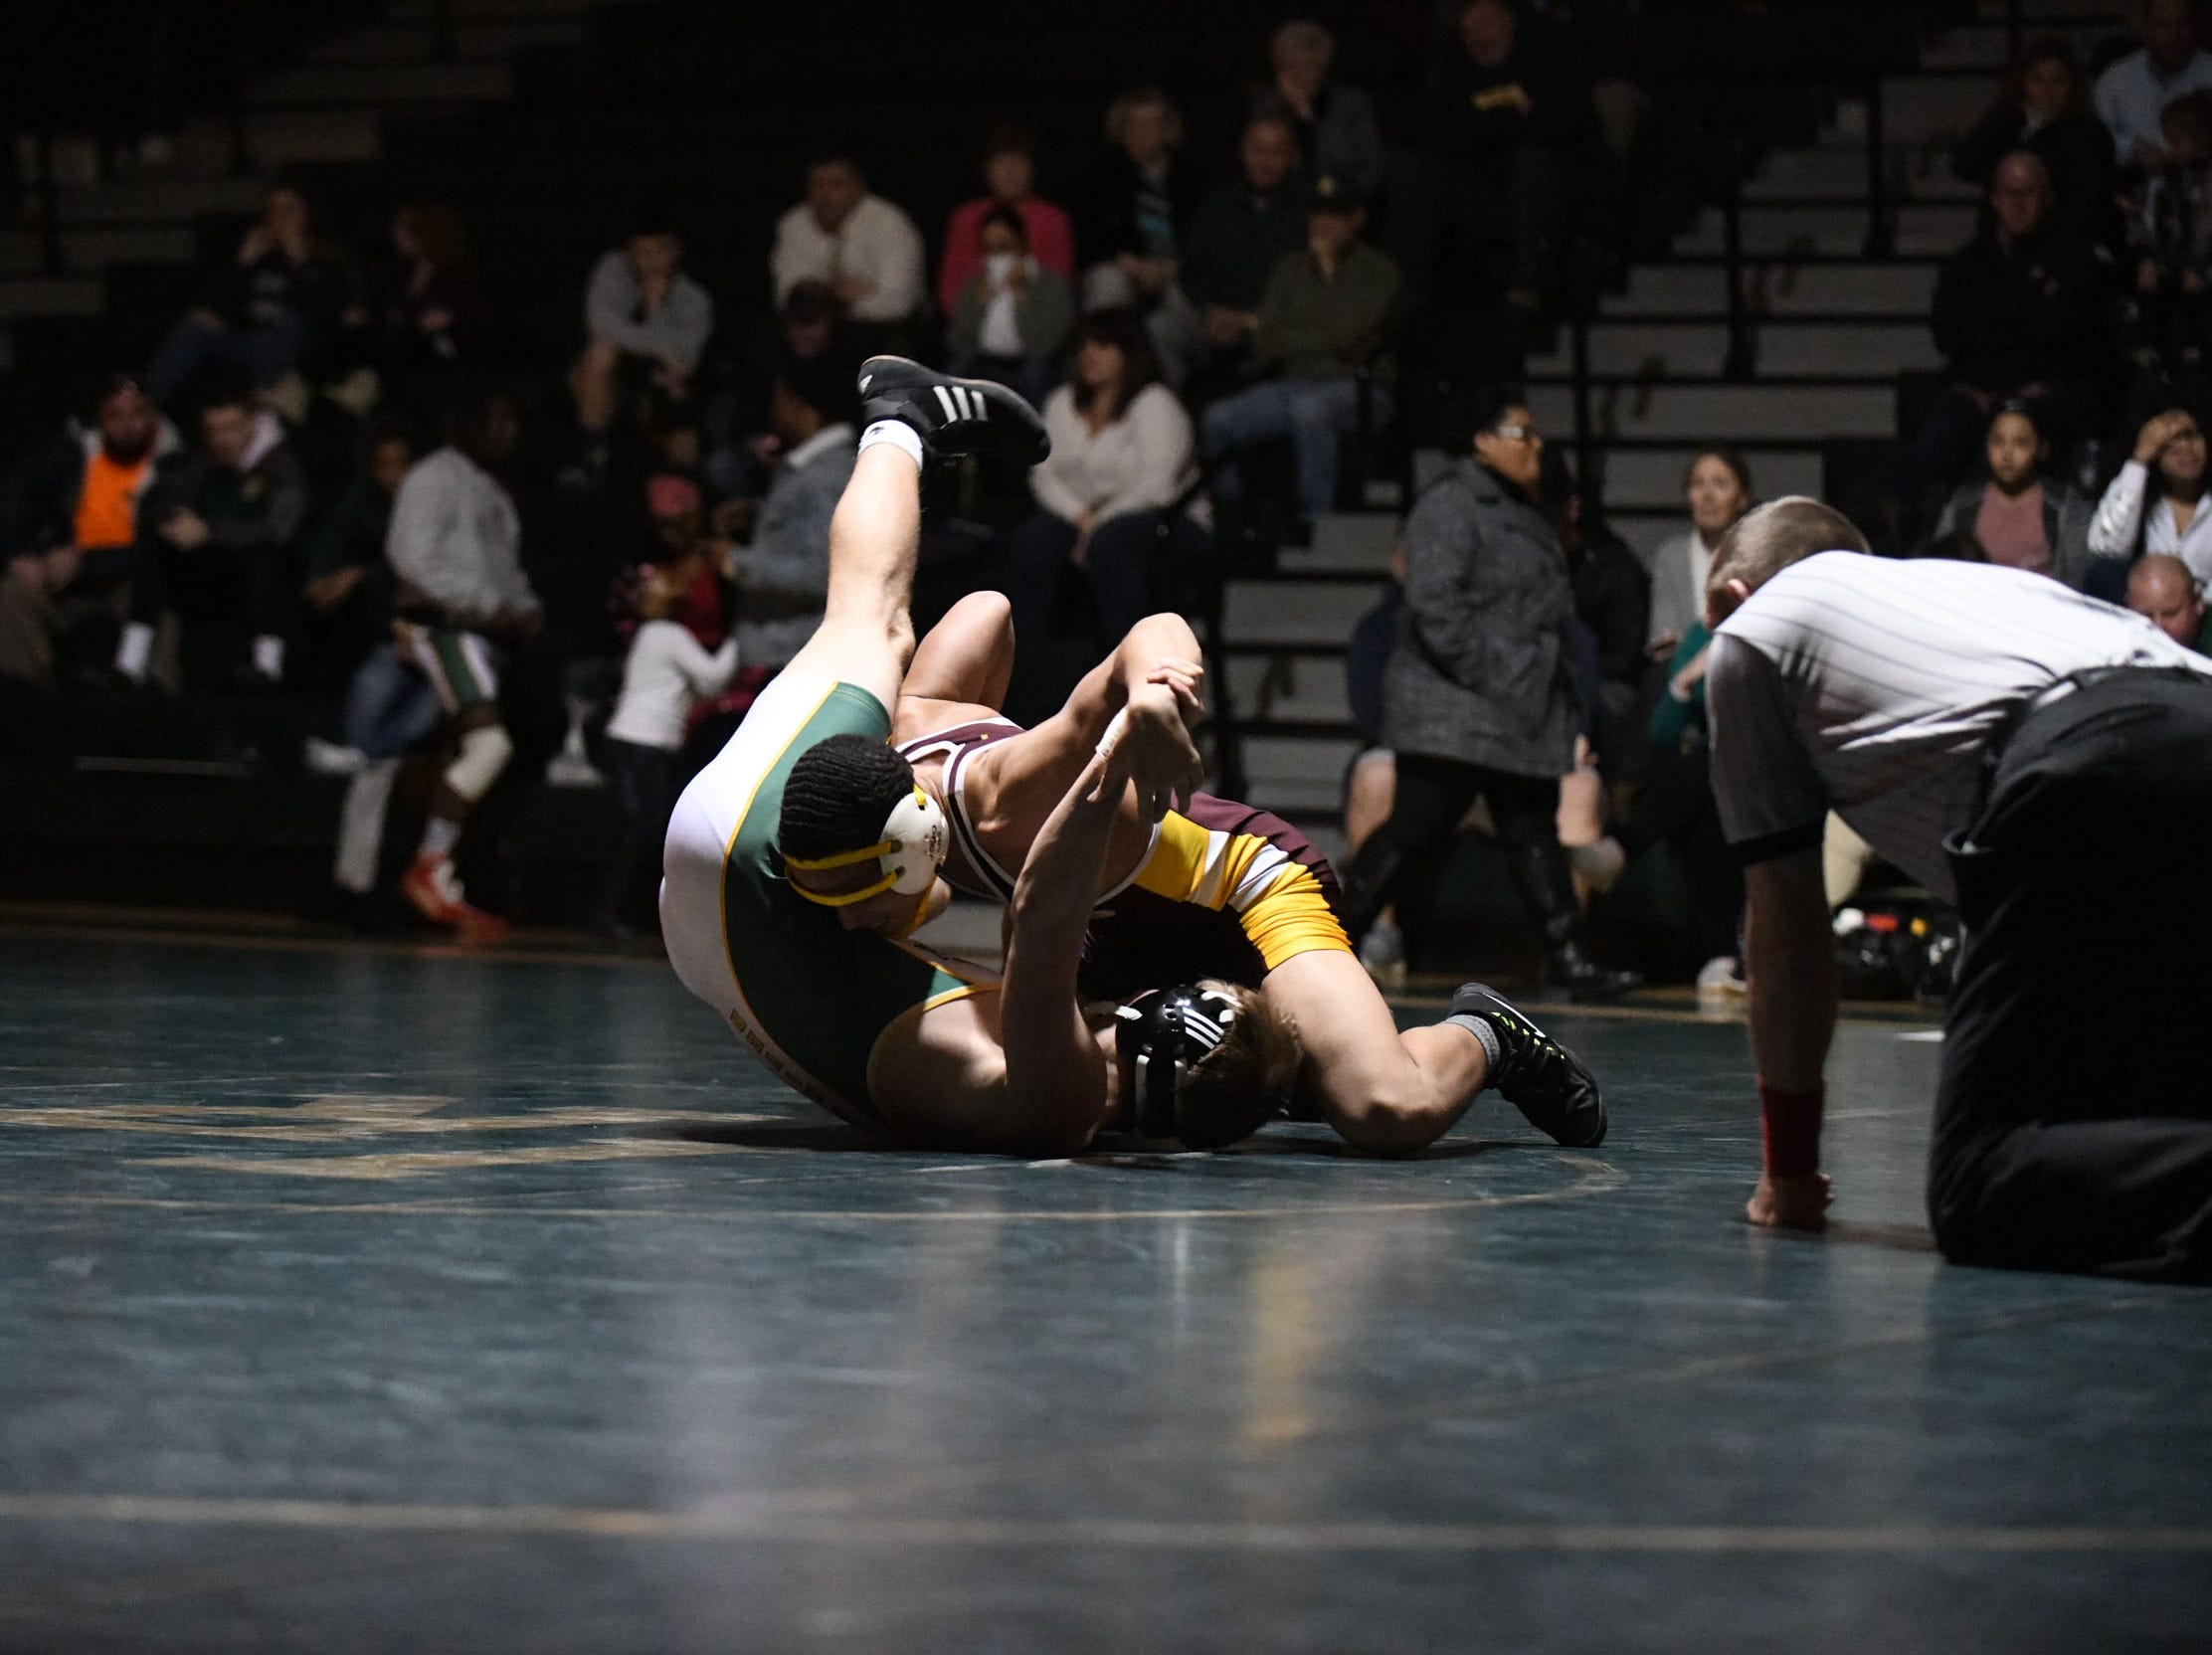 Indian River's Jalen Holland-Holloway battled Milford's Dalton Deevey during the 152lb match on Thursday, Jan 17, 2019 in Dagsboro, Del. Milford won the match 53-15.